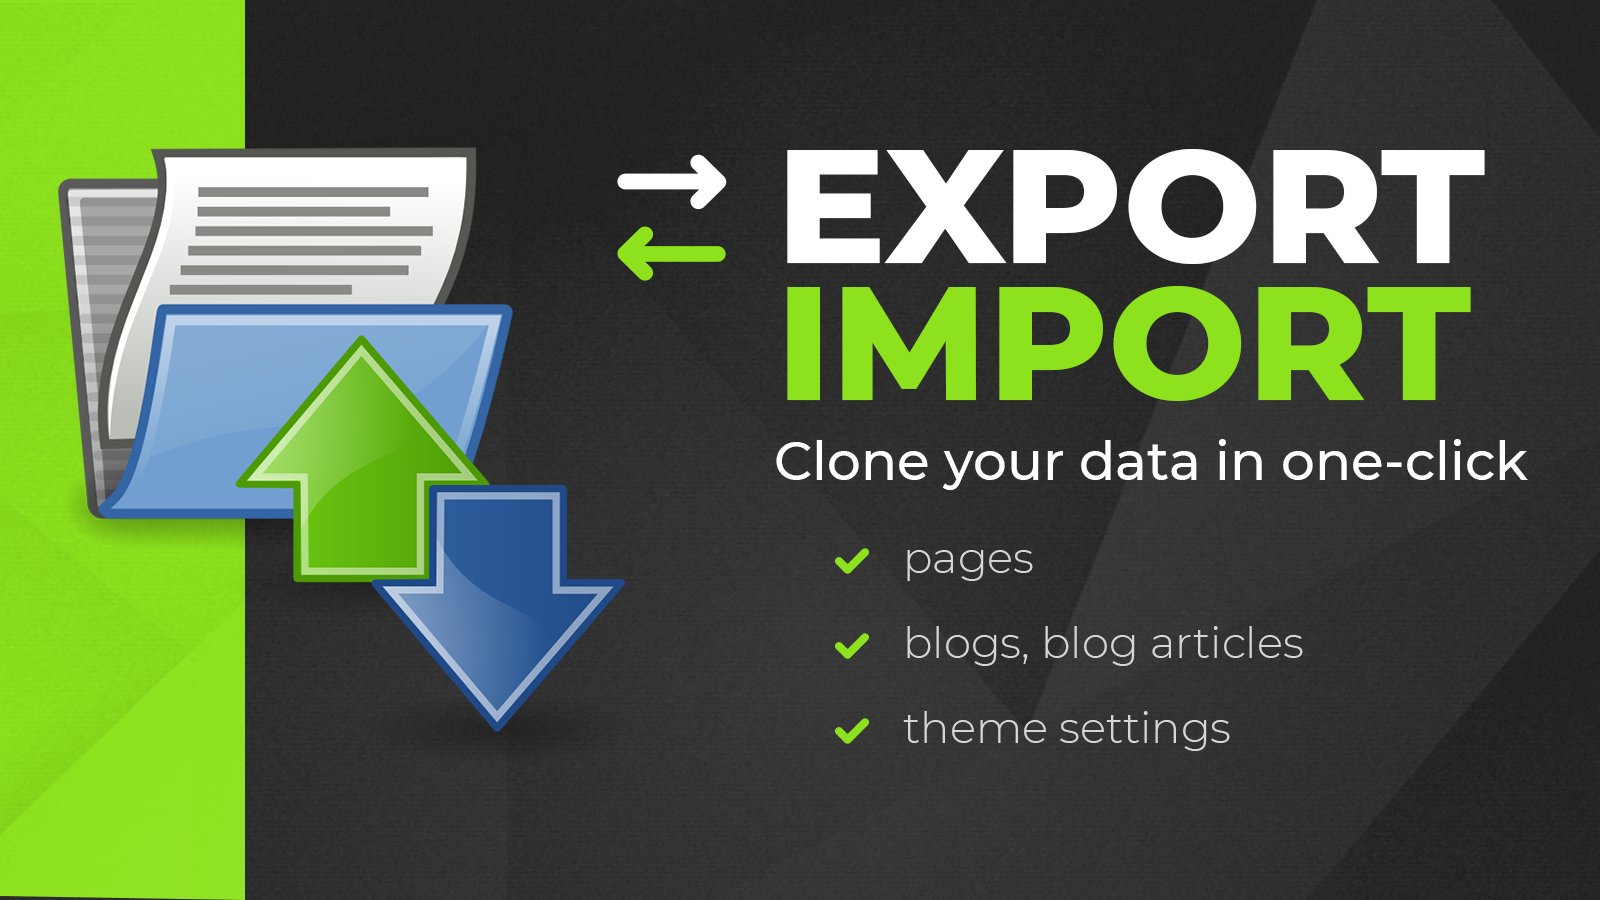 Export, import pages, blog articles and theme settings